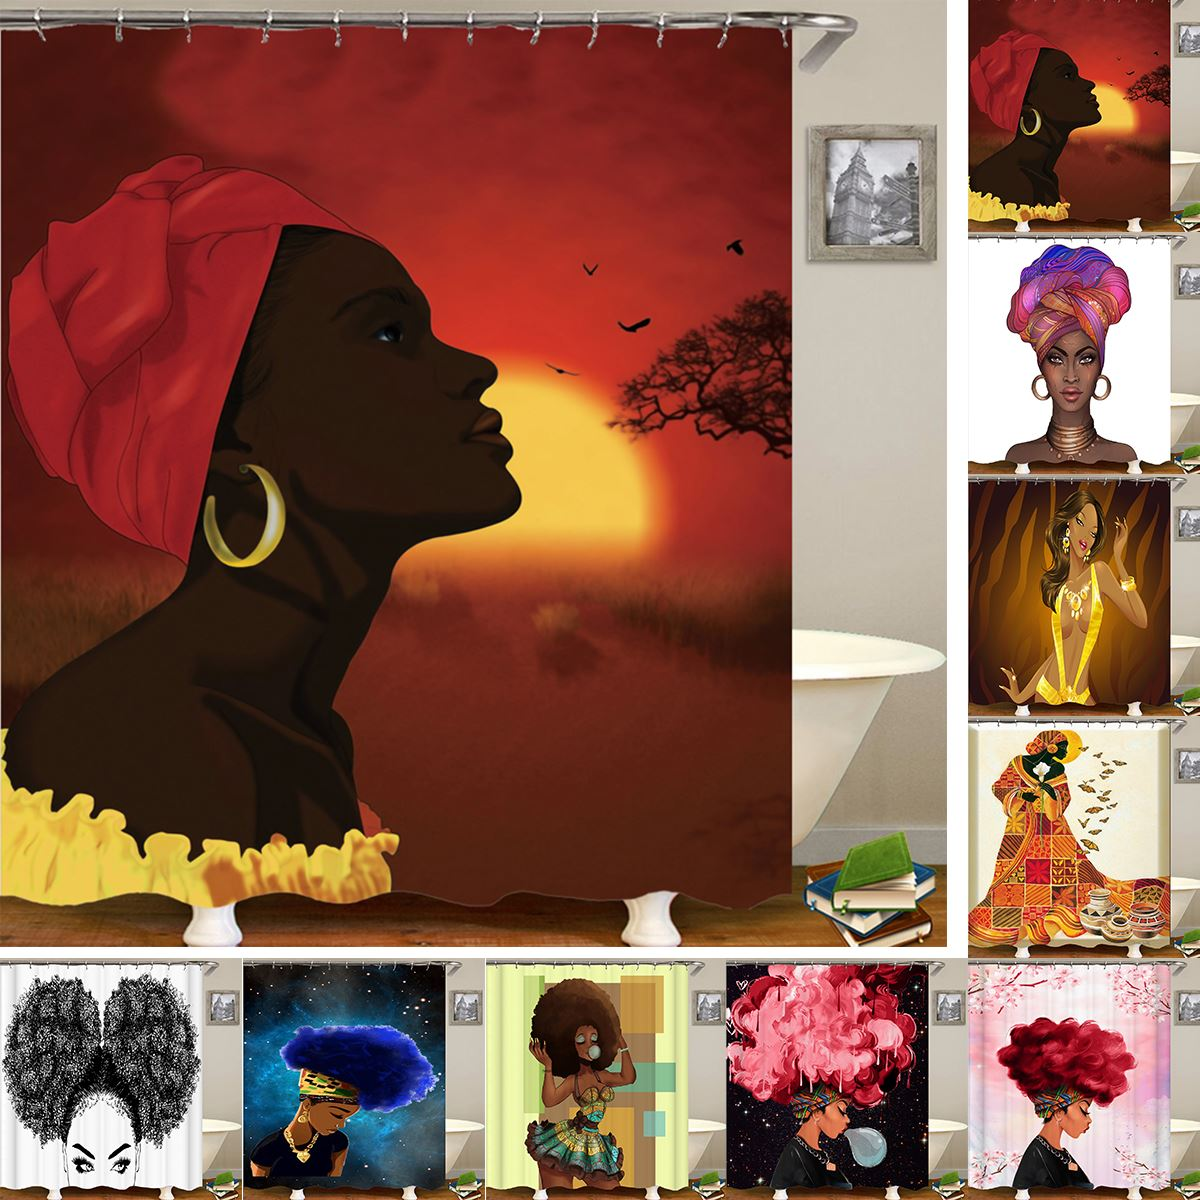 Unique South Africa Anime Figure Print Shower Curtain Waterproof Figure Print Shower Curtain With 12 Hooks For Bathroom